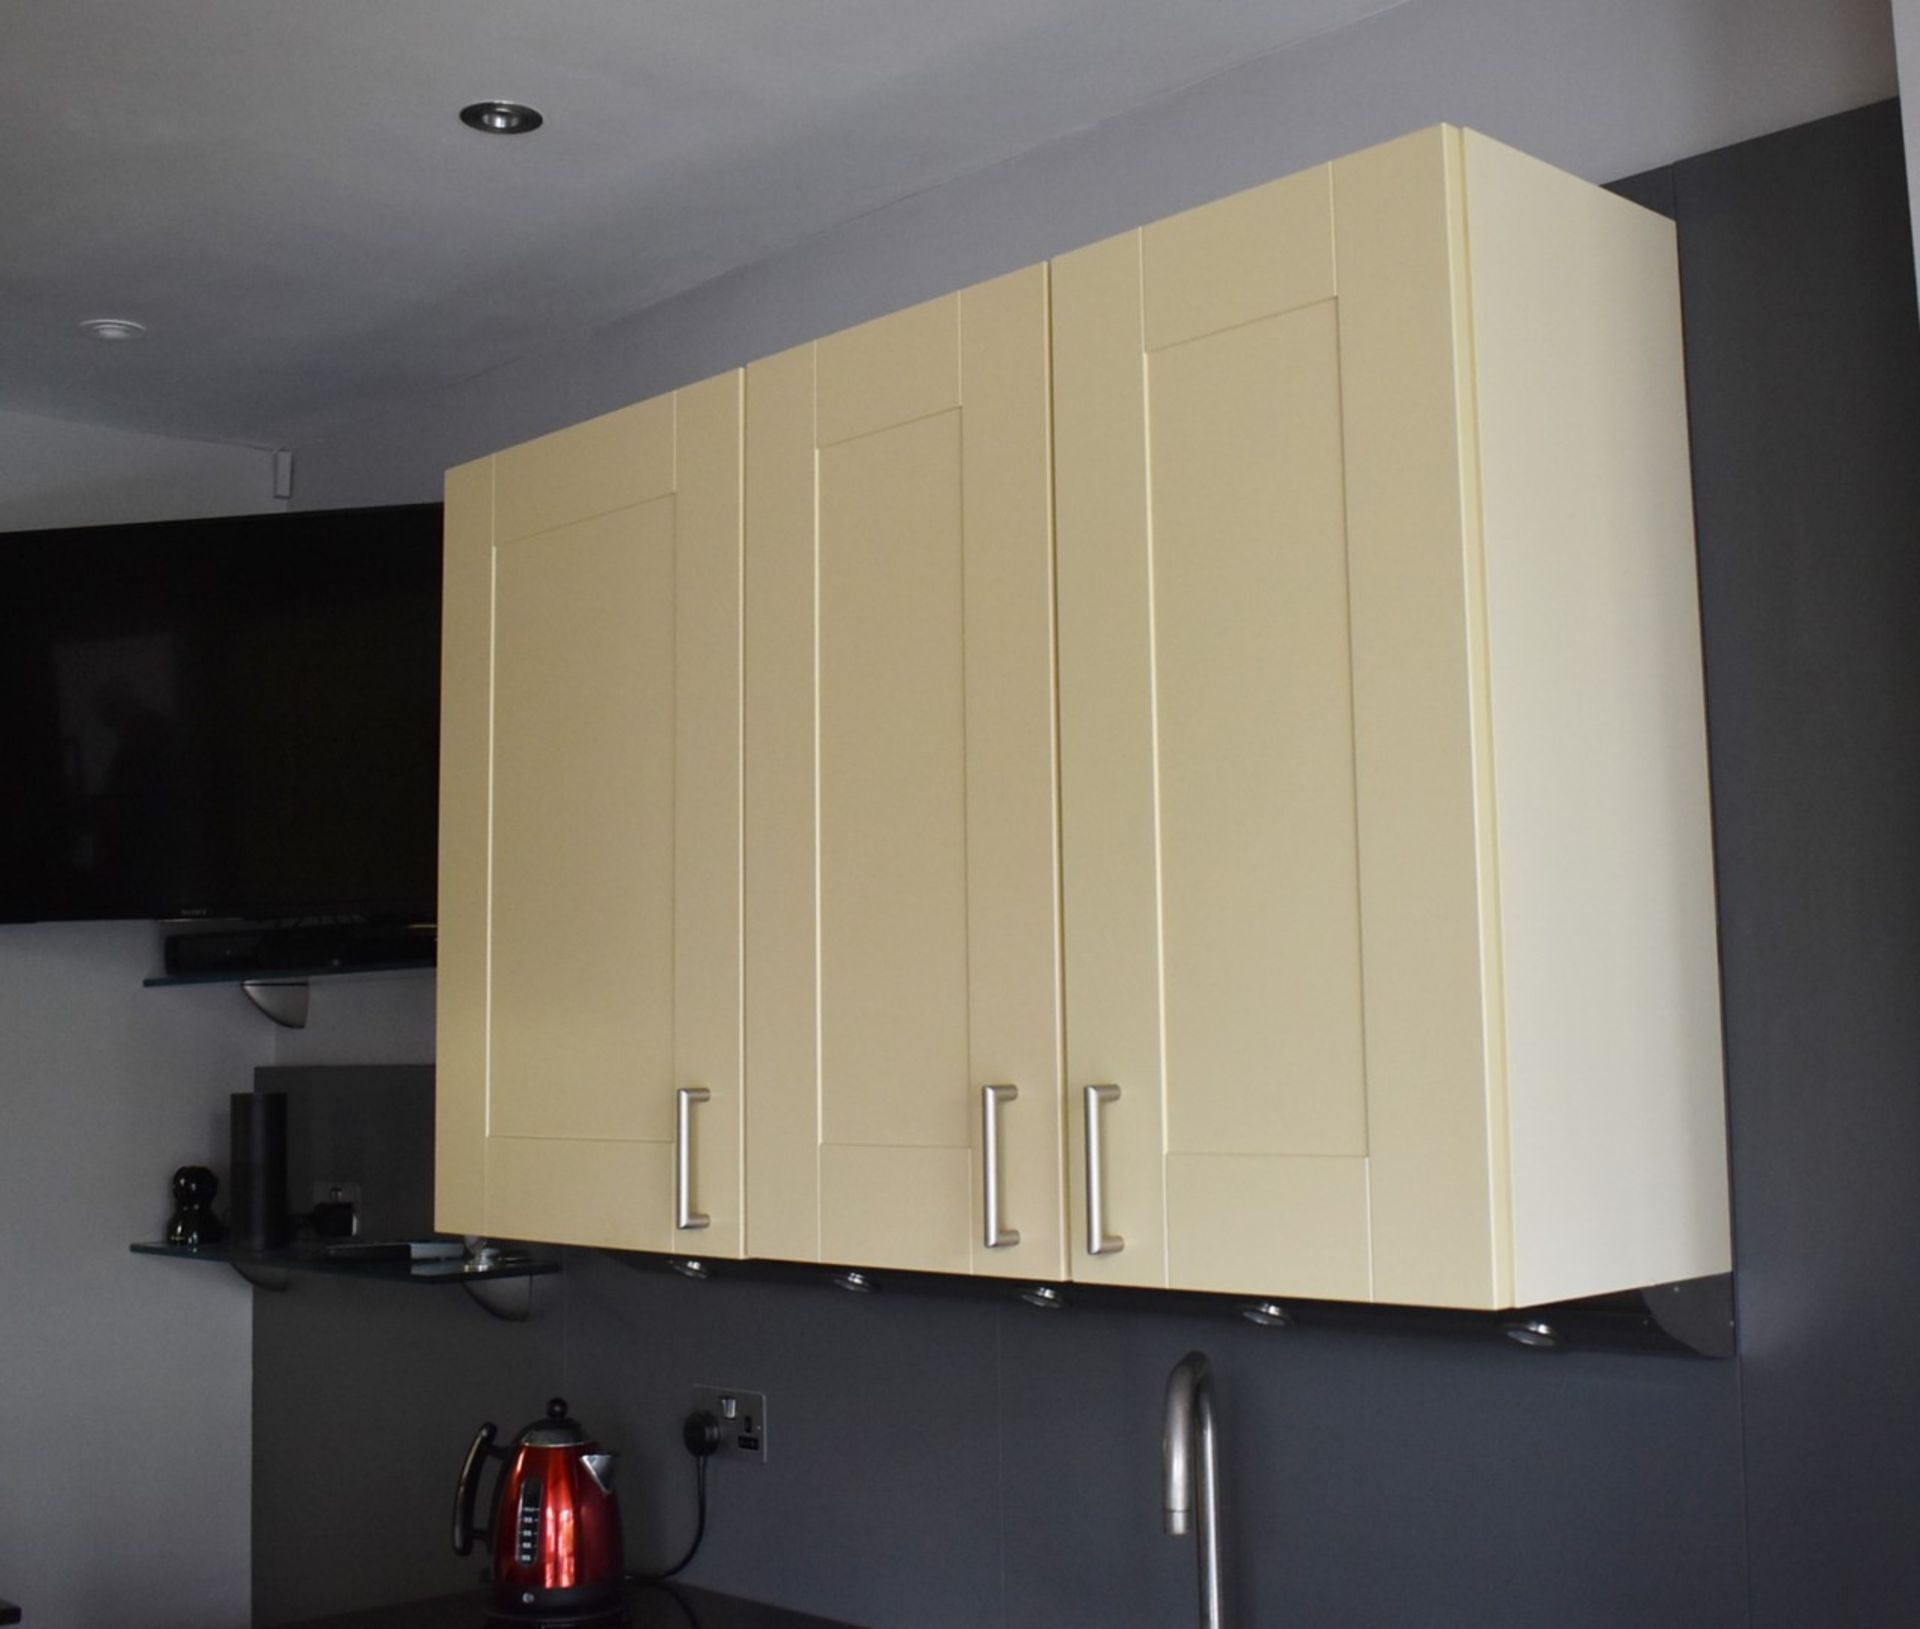 1 x SieMatic Contemporary Fitted Kitchen With Appliances - Features Shaker Style Doors, Central - Image 68 of 96